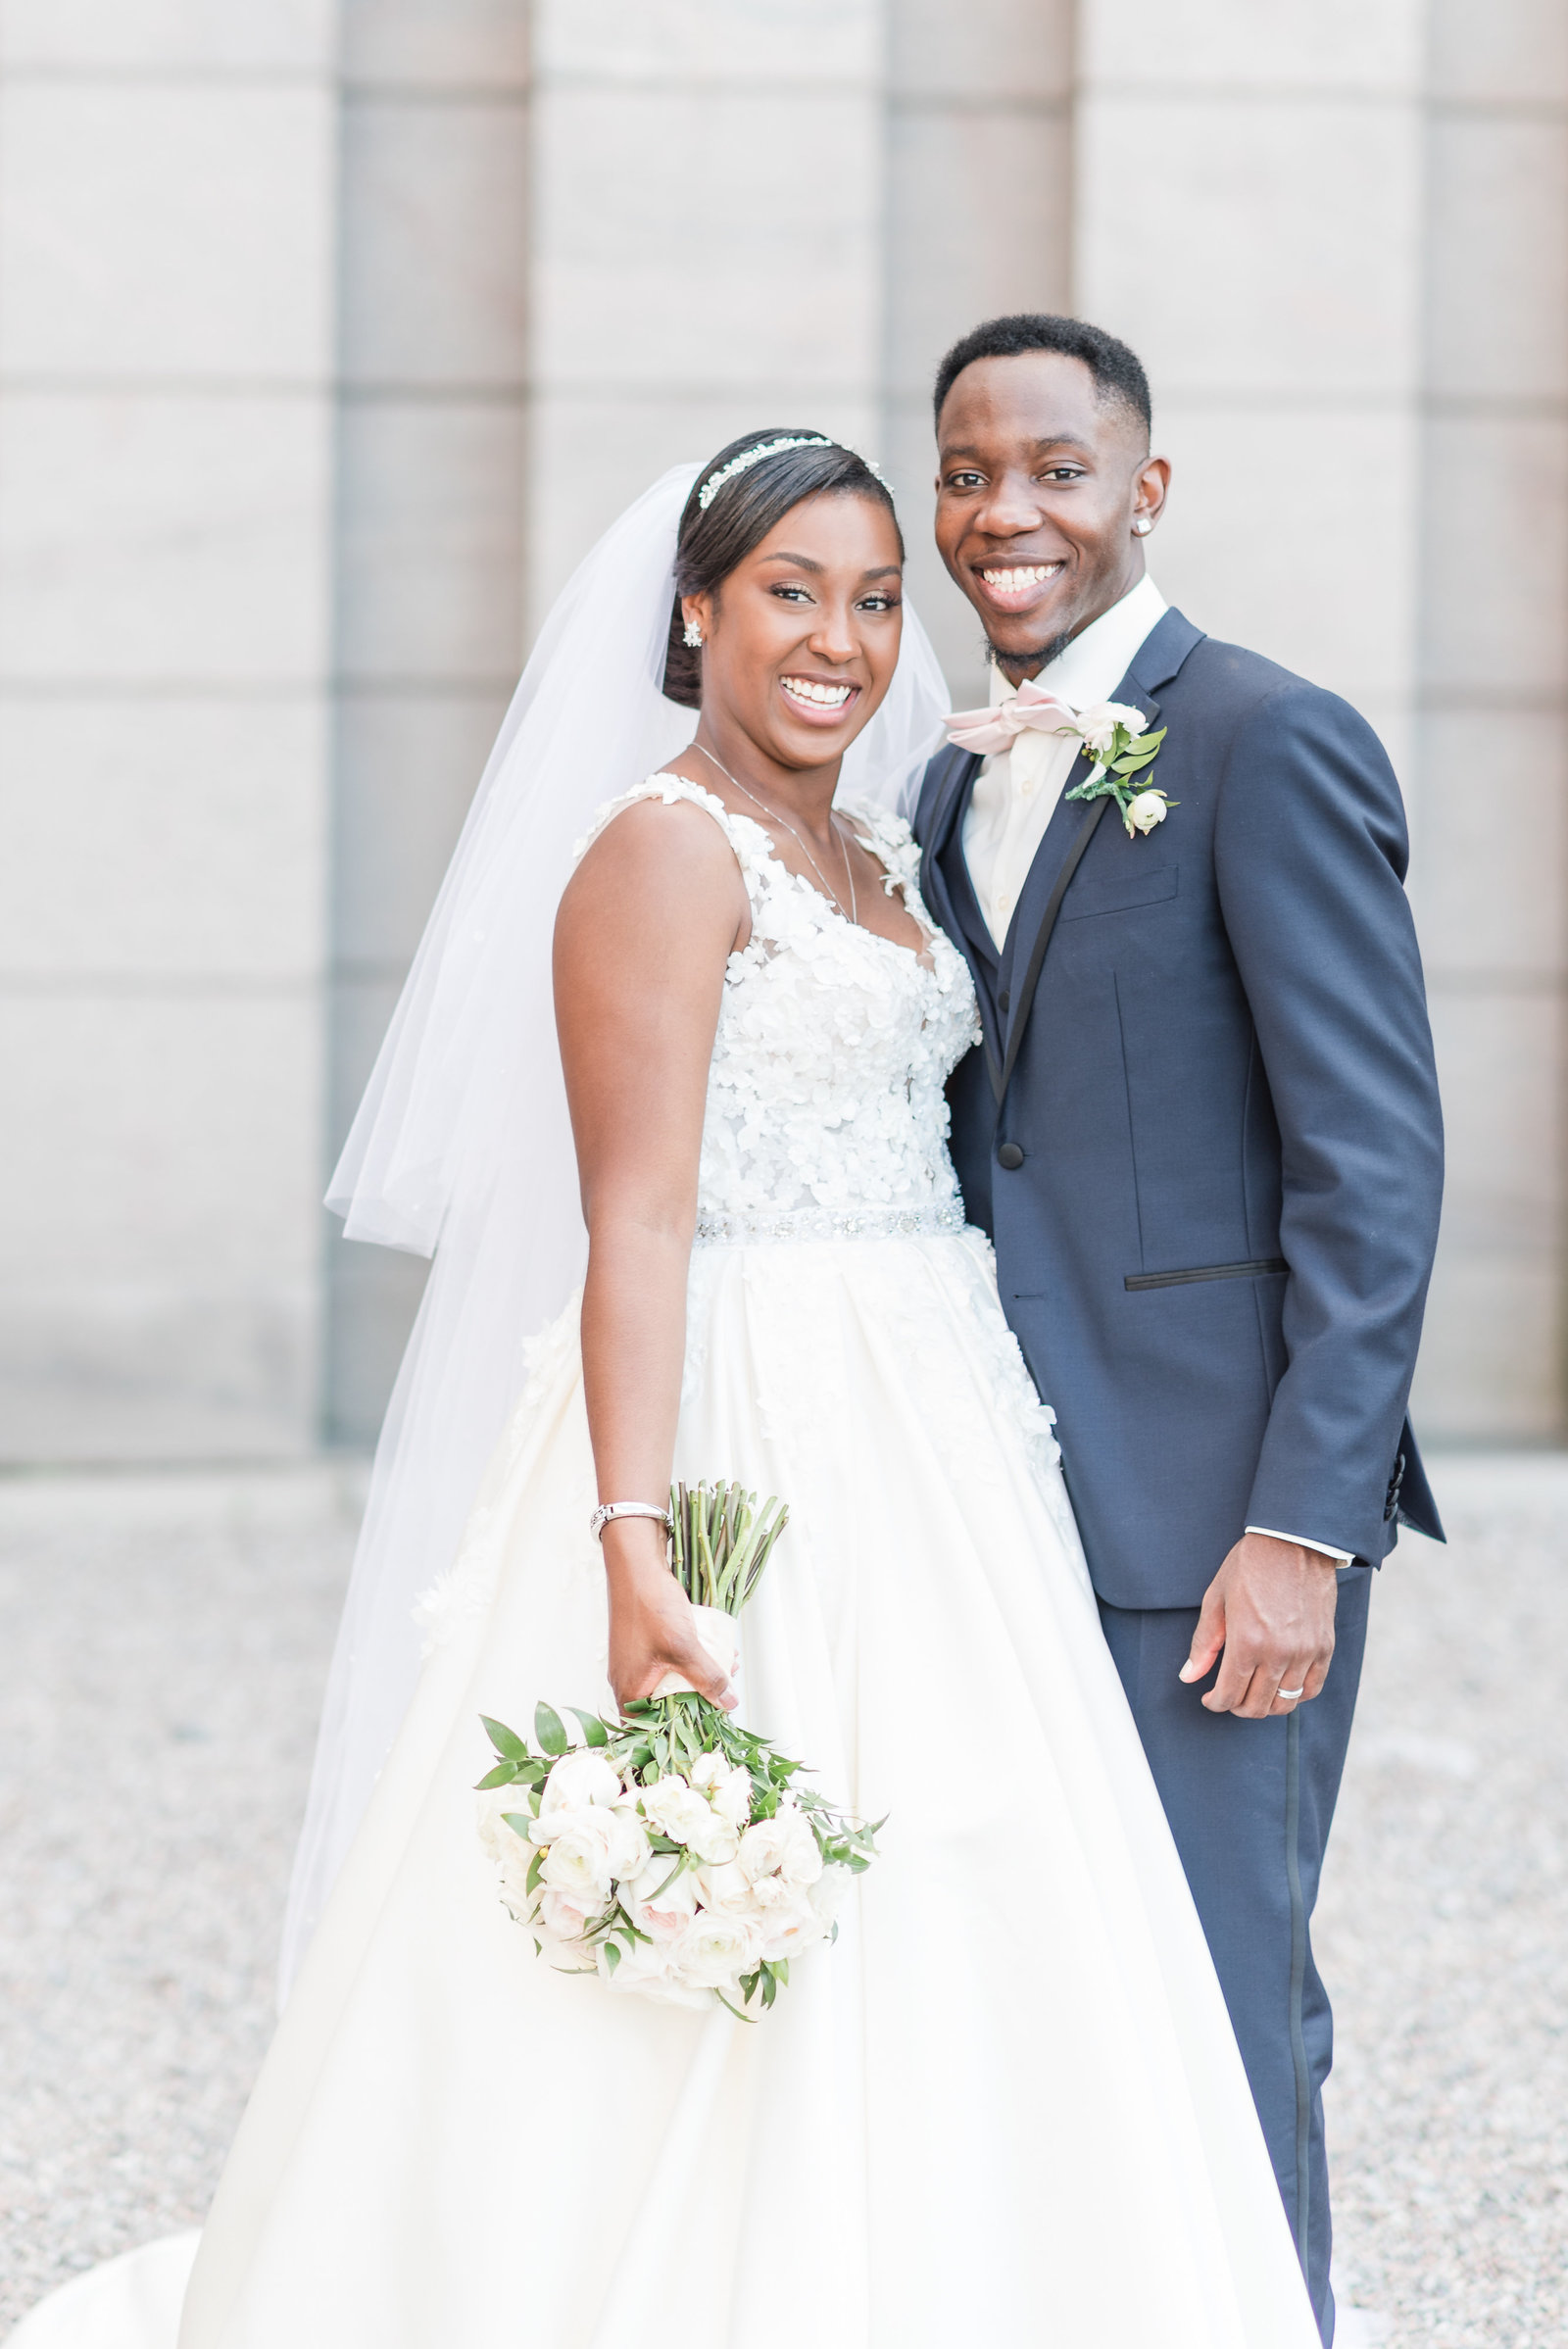 Samantha-Akeem-Wedding-173226